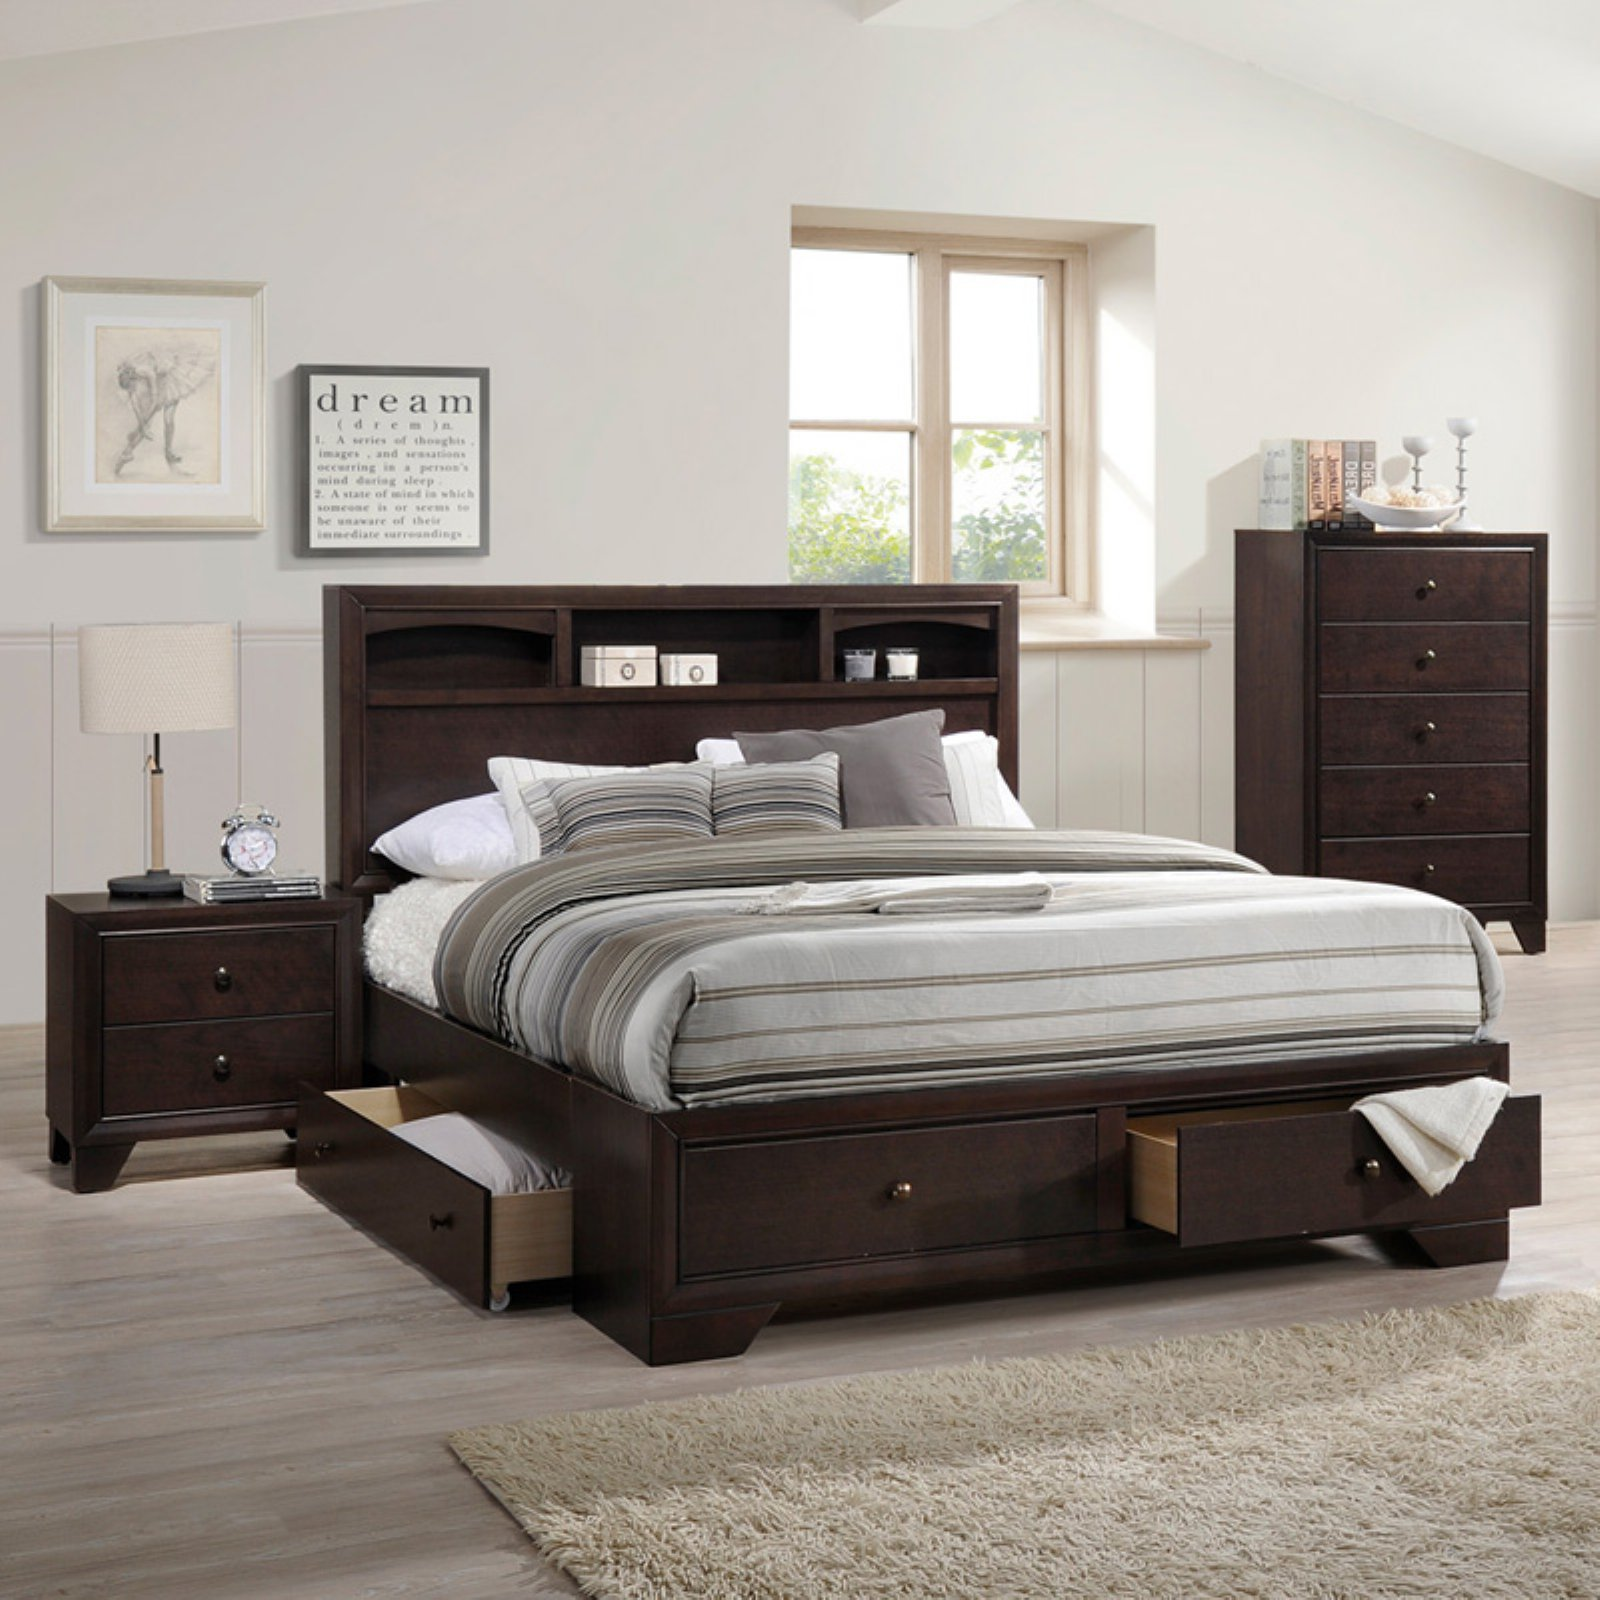 ACME Madison II Queen Bed with Storage in Espresso, Multiple Sizes